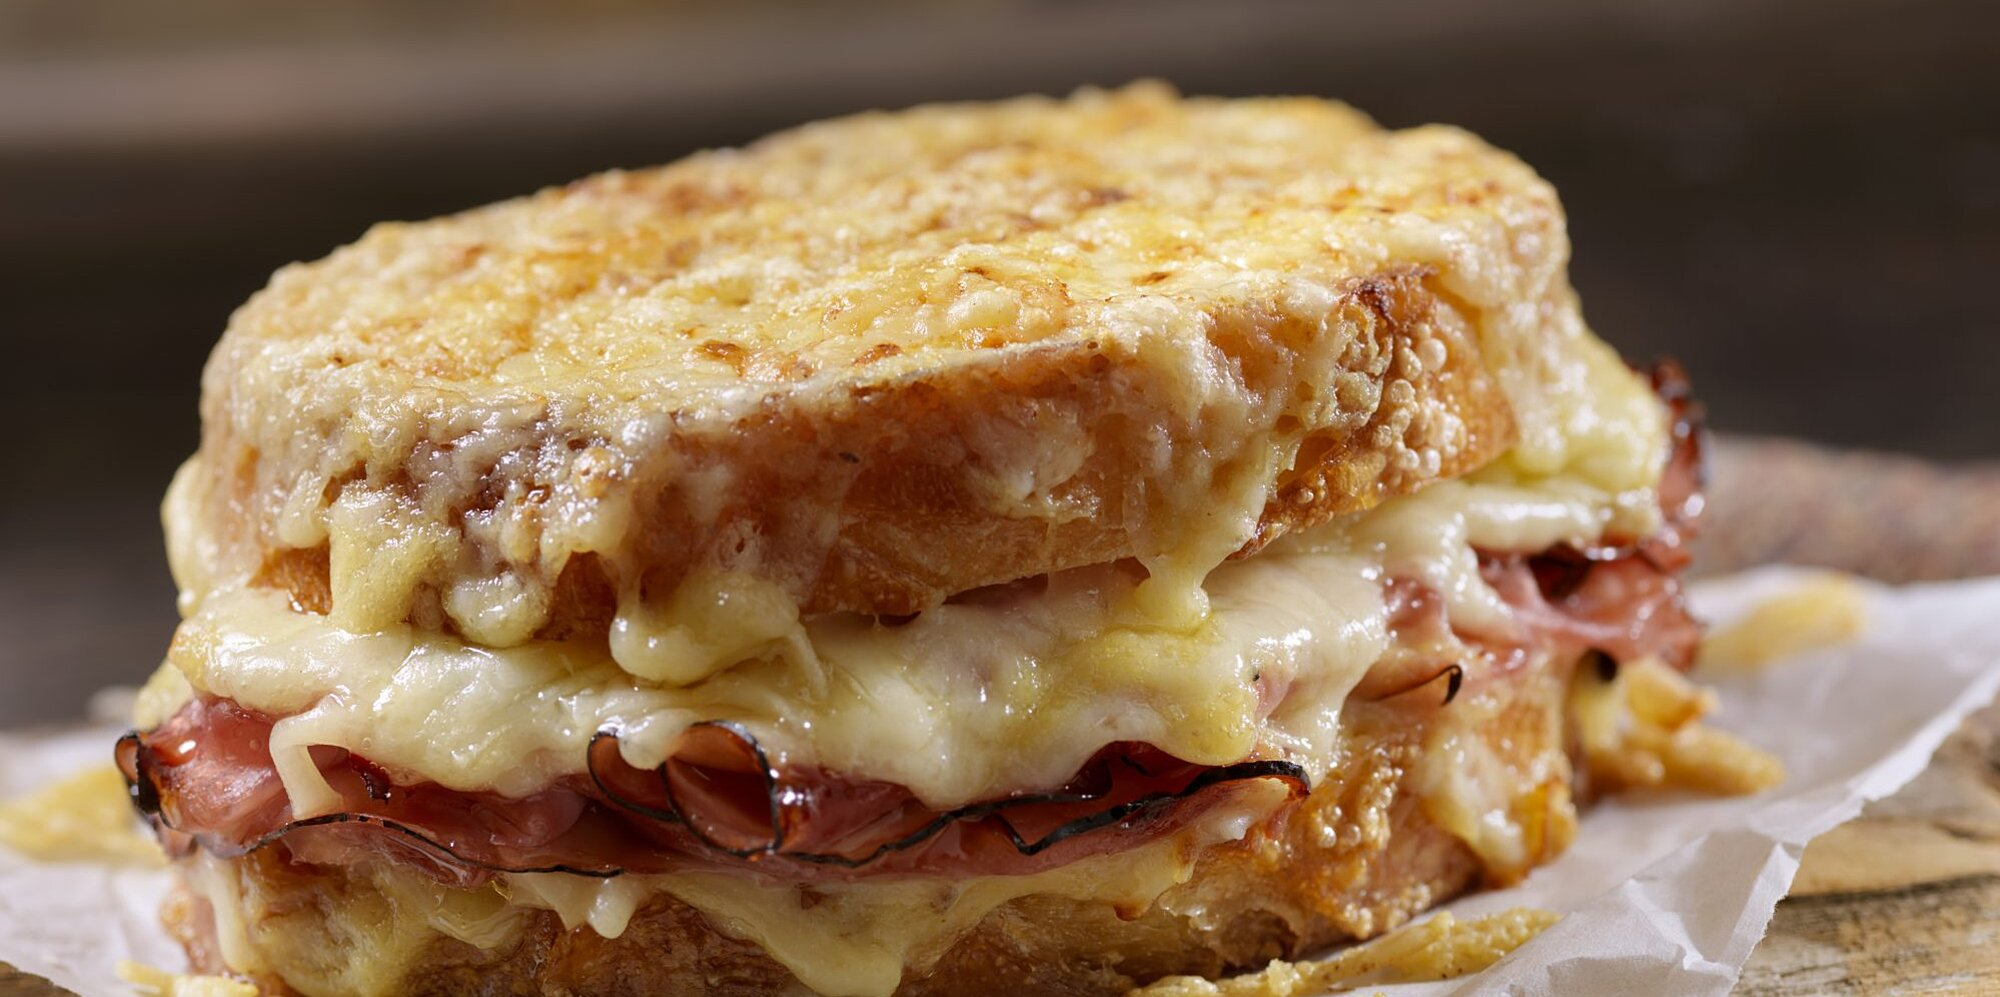 Croque Monsieur vs. Croque Madame: What's the Difference?